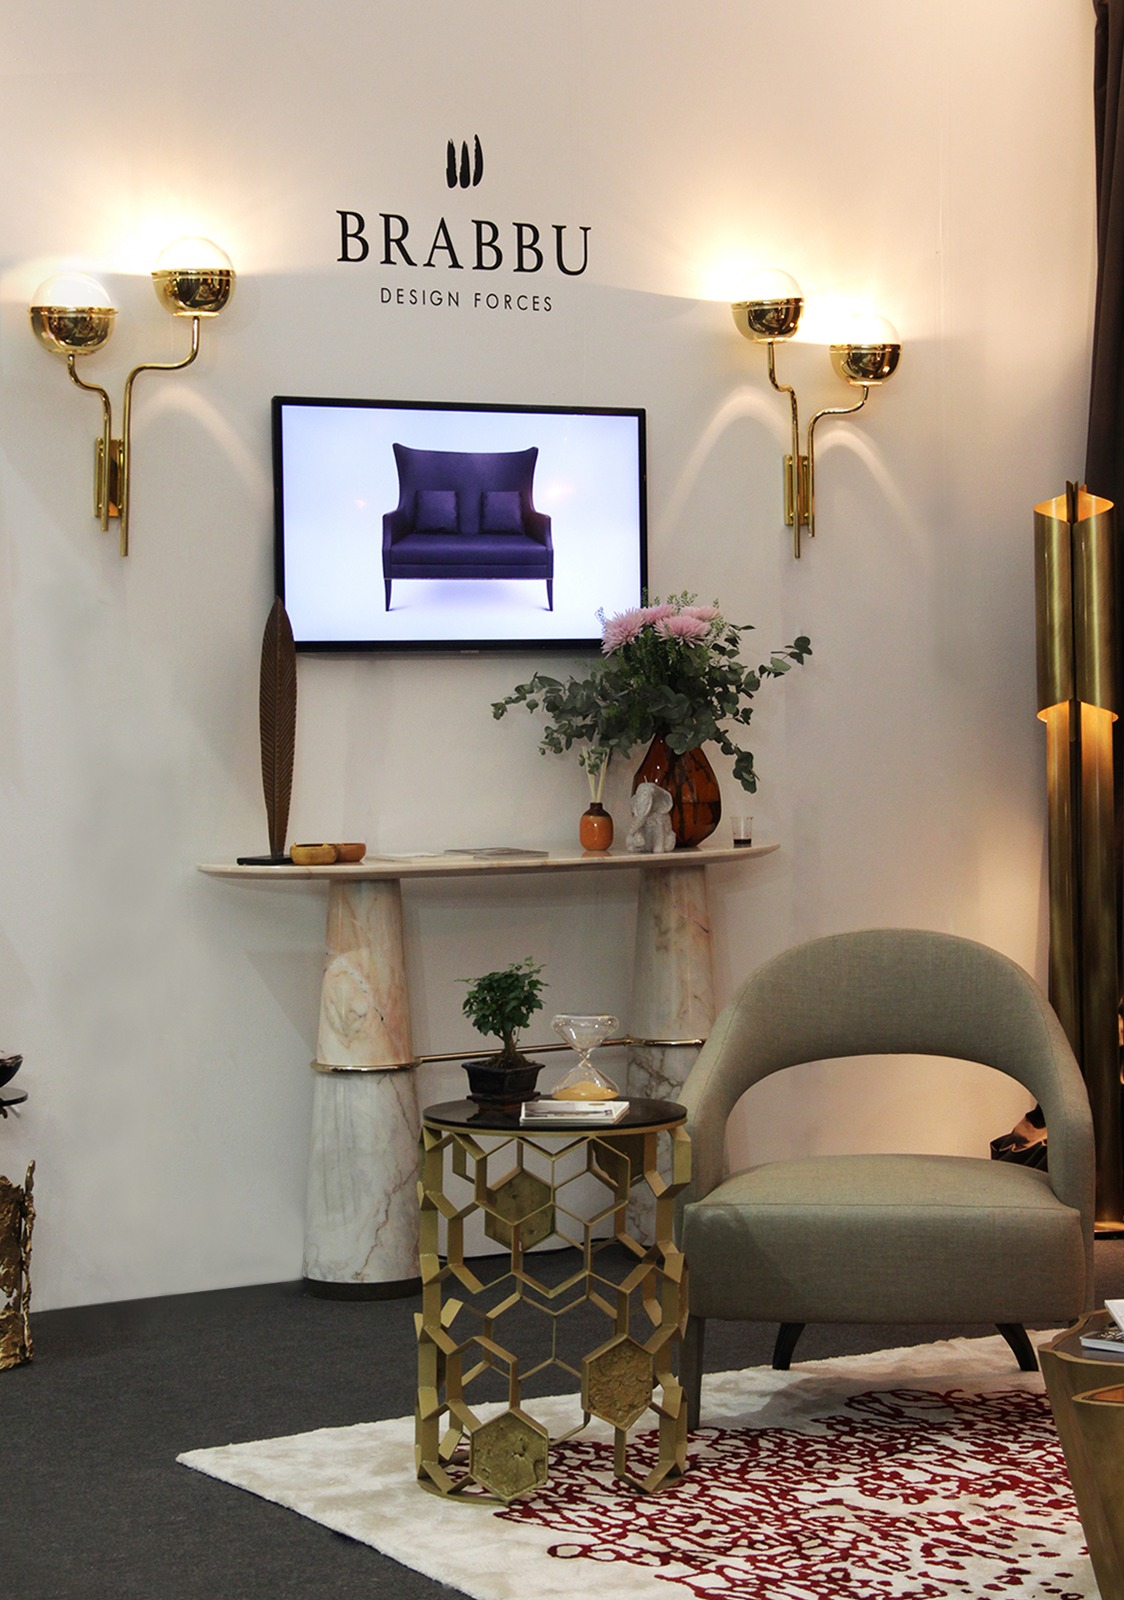 Brabbu at Decorex  decorex international 2016 Get Inside Decorex International 2016: Take the First Look Get Inside Decorex International 2016 Take the First Look 8